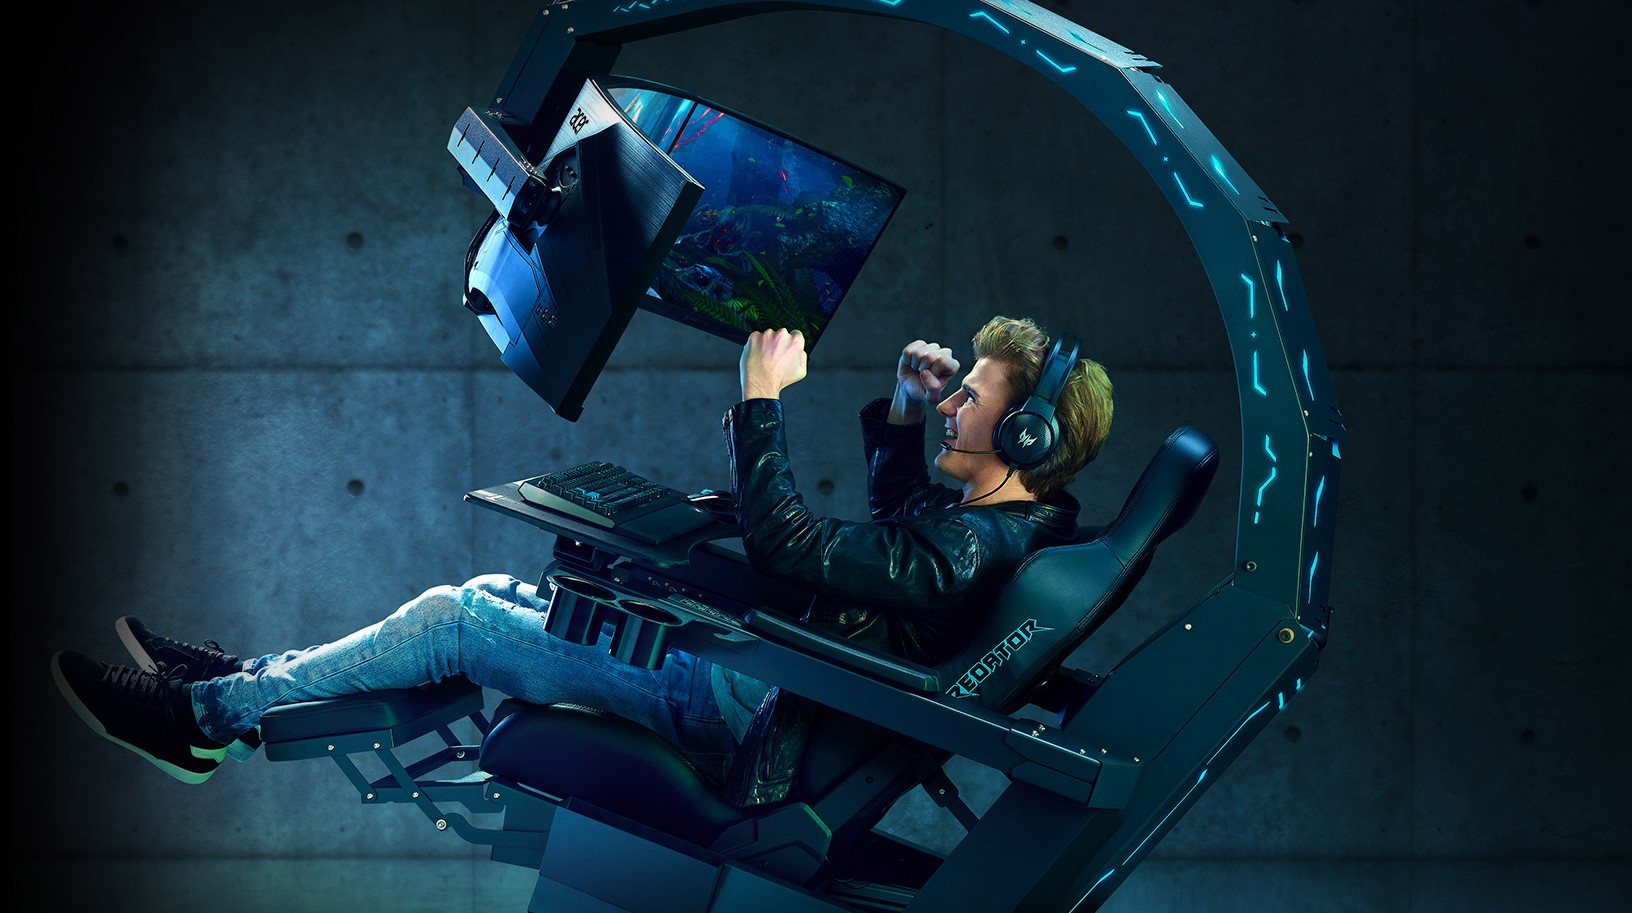 Tech-Gift-Guide-Man-in-Acer-Predator-Throne-cheering-as-he-plays-game.jpg